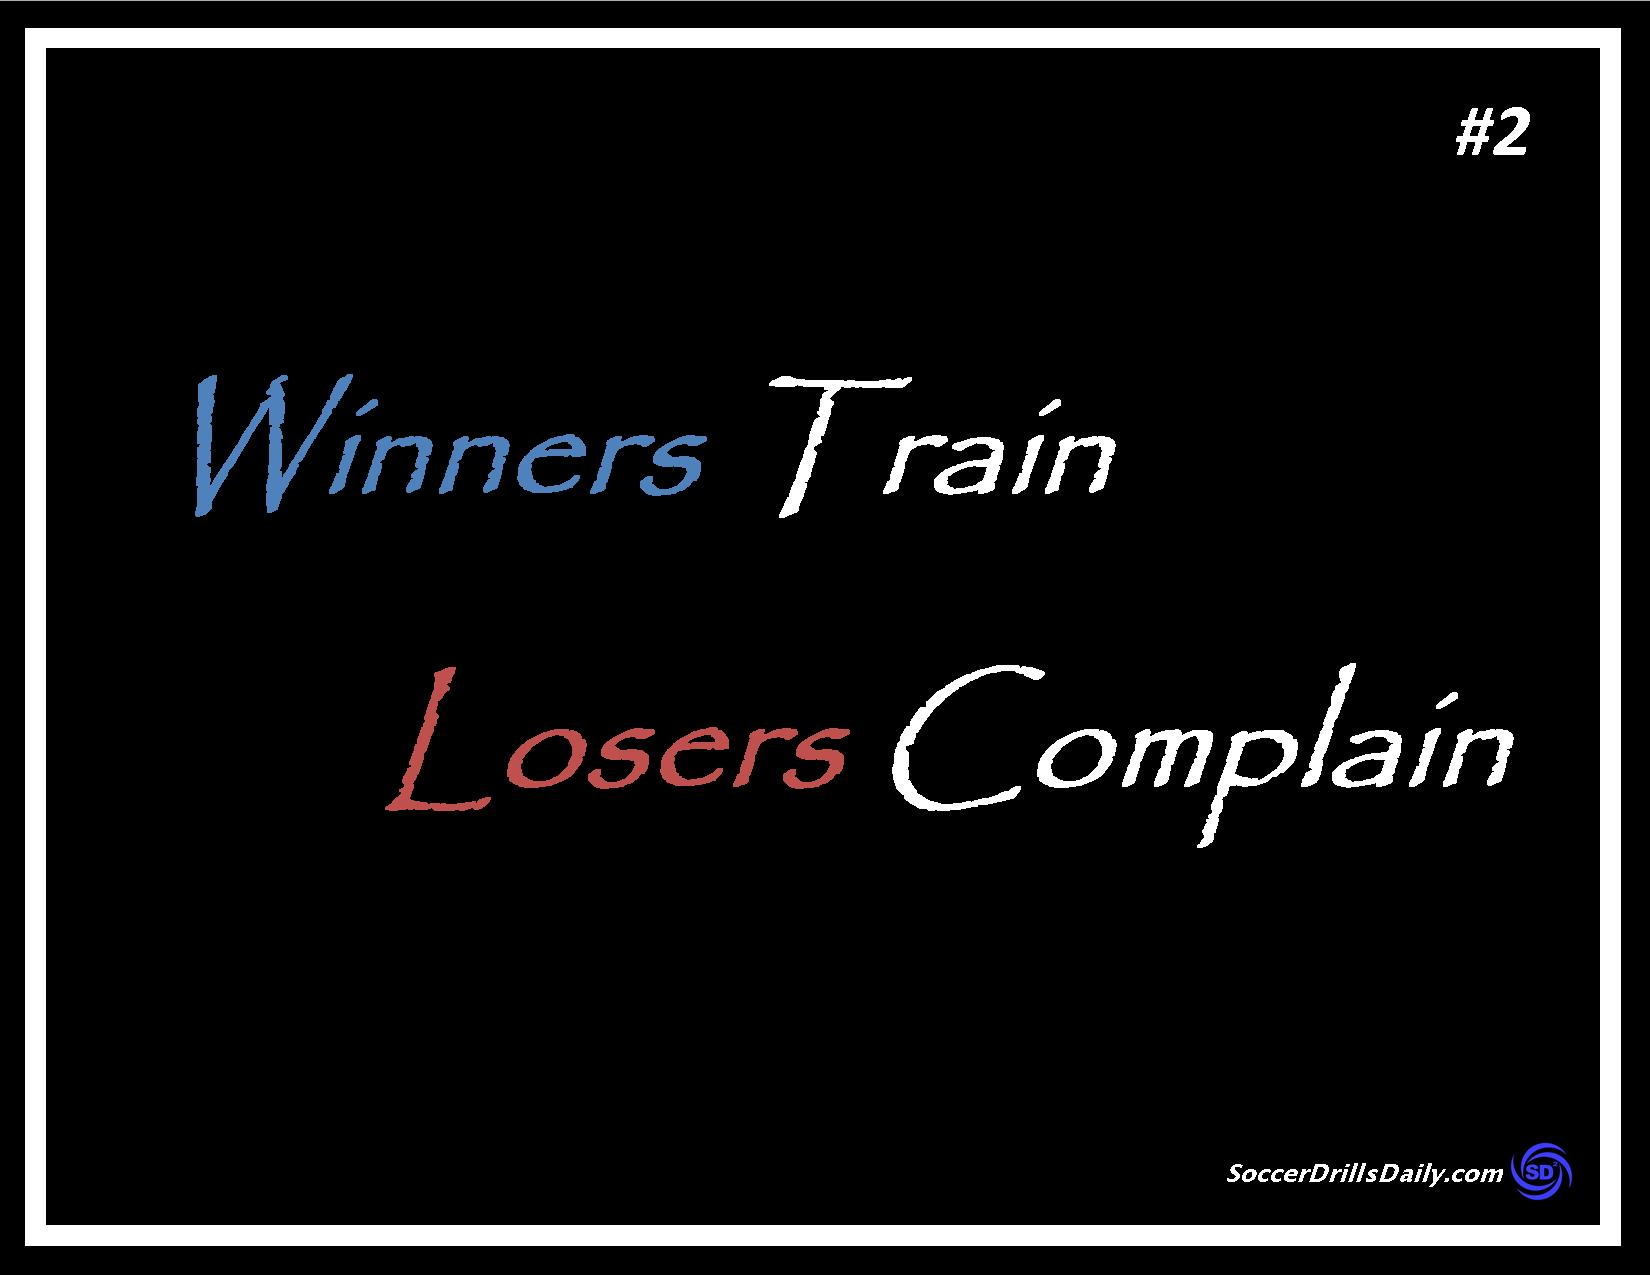 Loser People Quotes Quotesgram: Quotes Motivational Losers Complain. QuotesGram